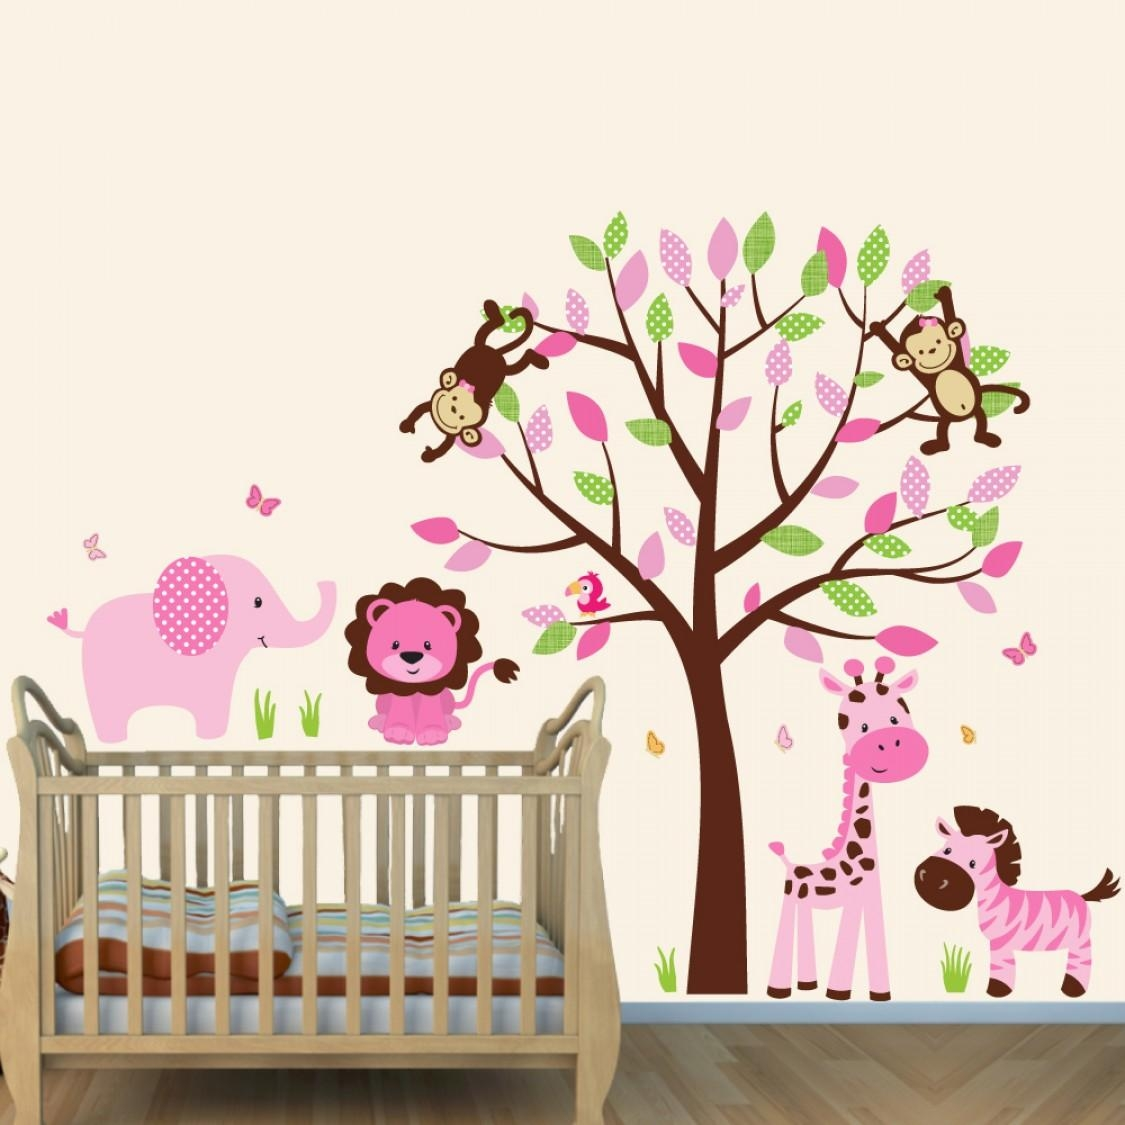 Pink And Brown Jungle Murals For Kids Rooms With Elephant Wall Throughout Elephant Wall Art For Nursery (View 19 of 20)